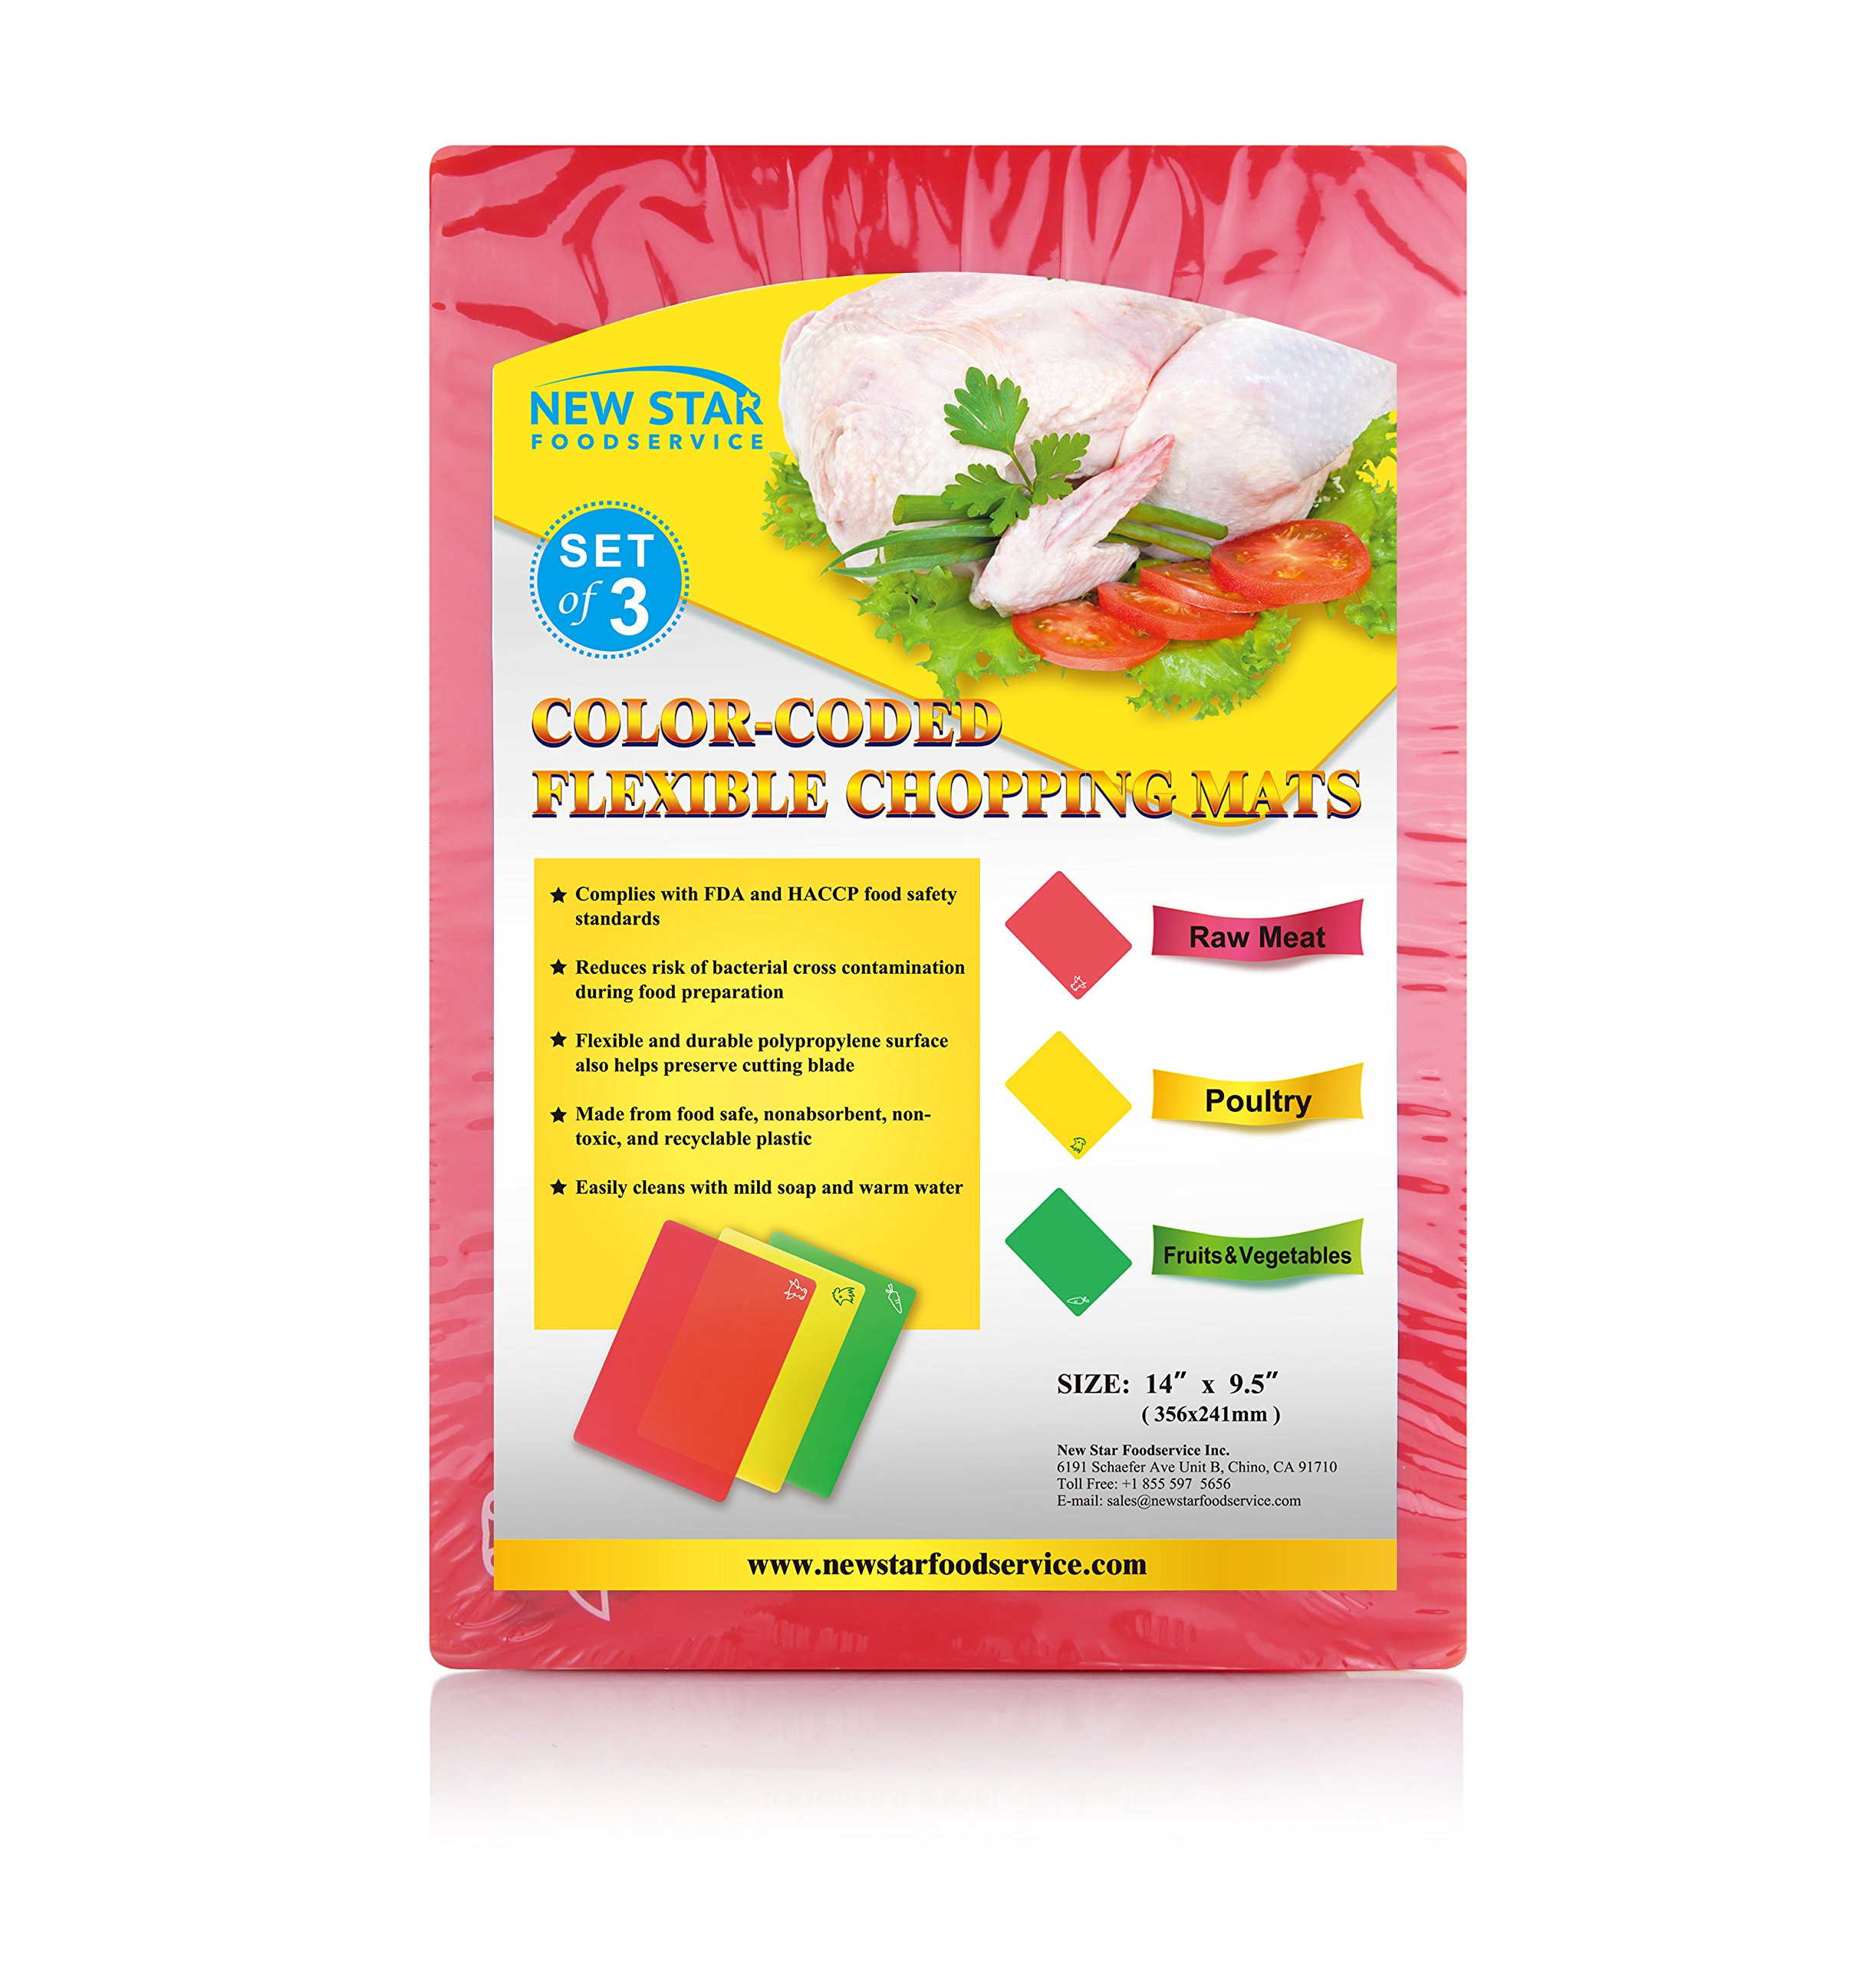 New Star Foodservice 28690 Flexible Cutting Board, 9.5-Inch by 14-Inch, Assorted Colors, Set of 3 by New Star Foodservice (Image #2)